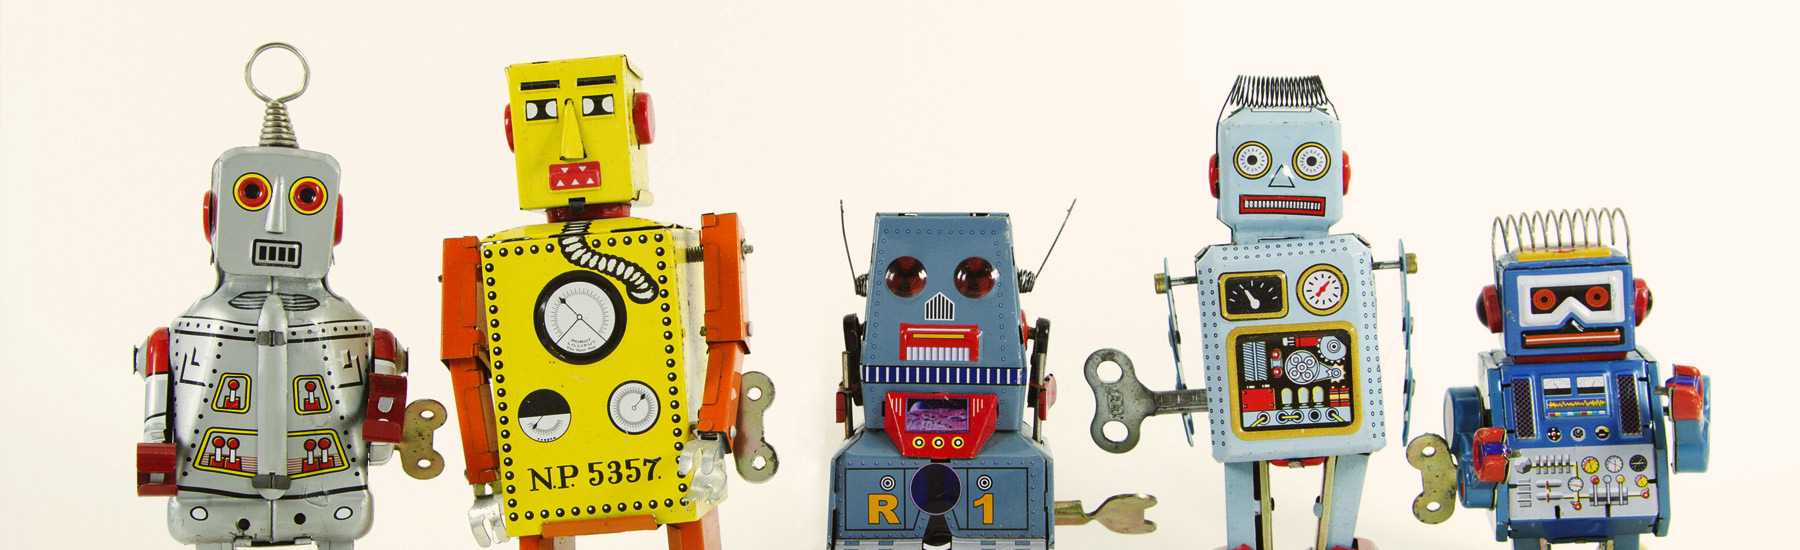 robots packages page